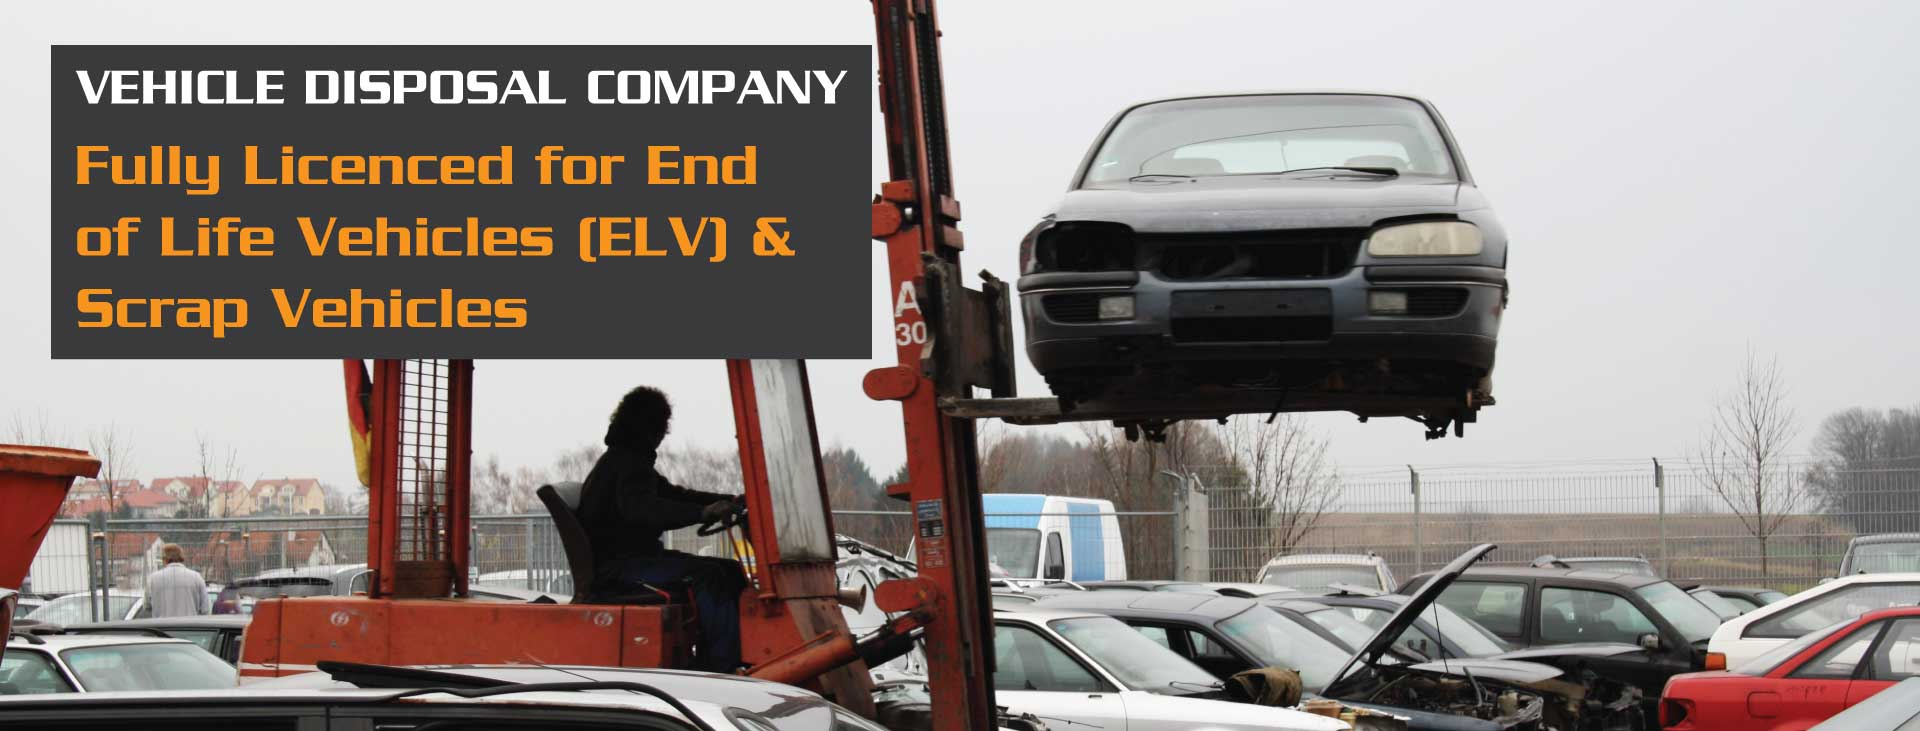 Halifax Metals Vehicle Disposal Company Fully Licenced for End of Life Vehicles (ELV) & Scrap Vehicles